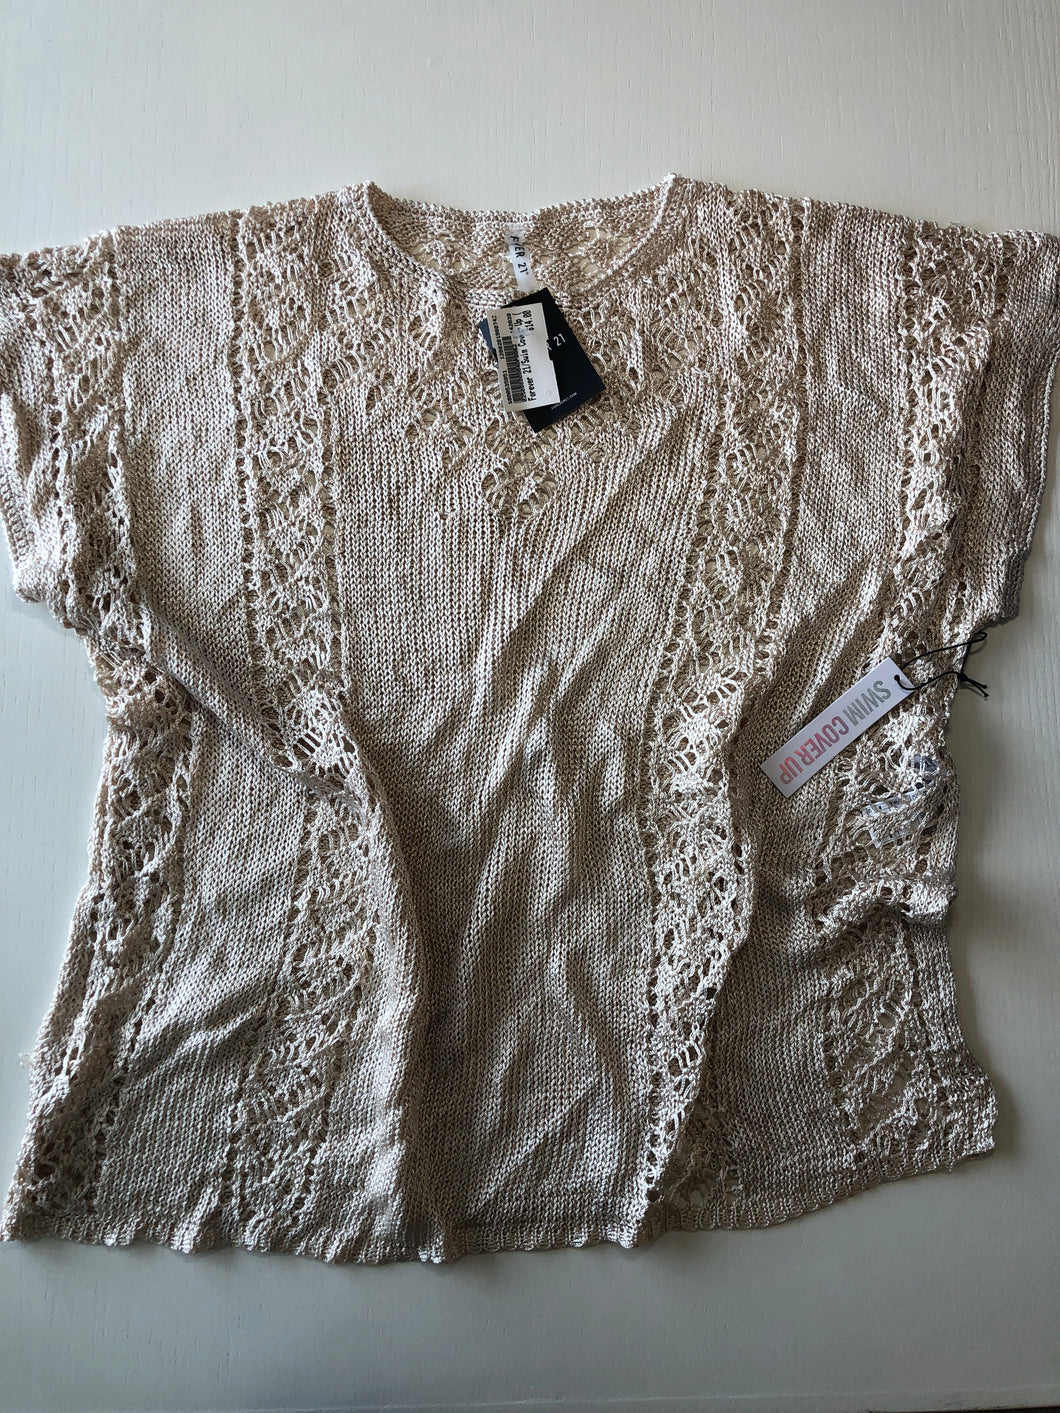 Previously Owned With Tags Women's Forever 21 Cover Up Size M